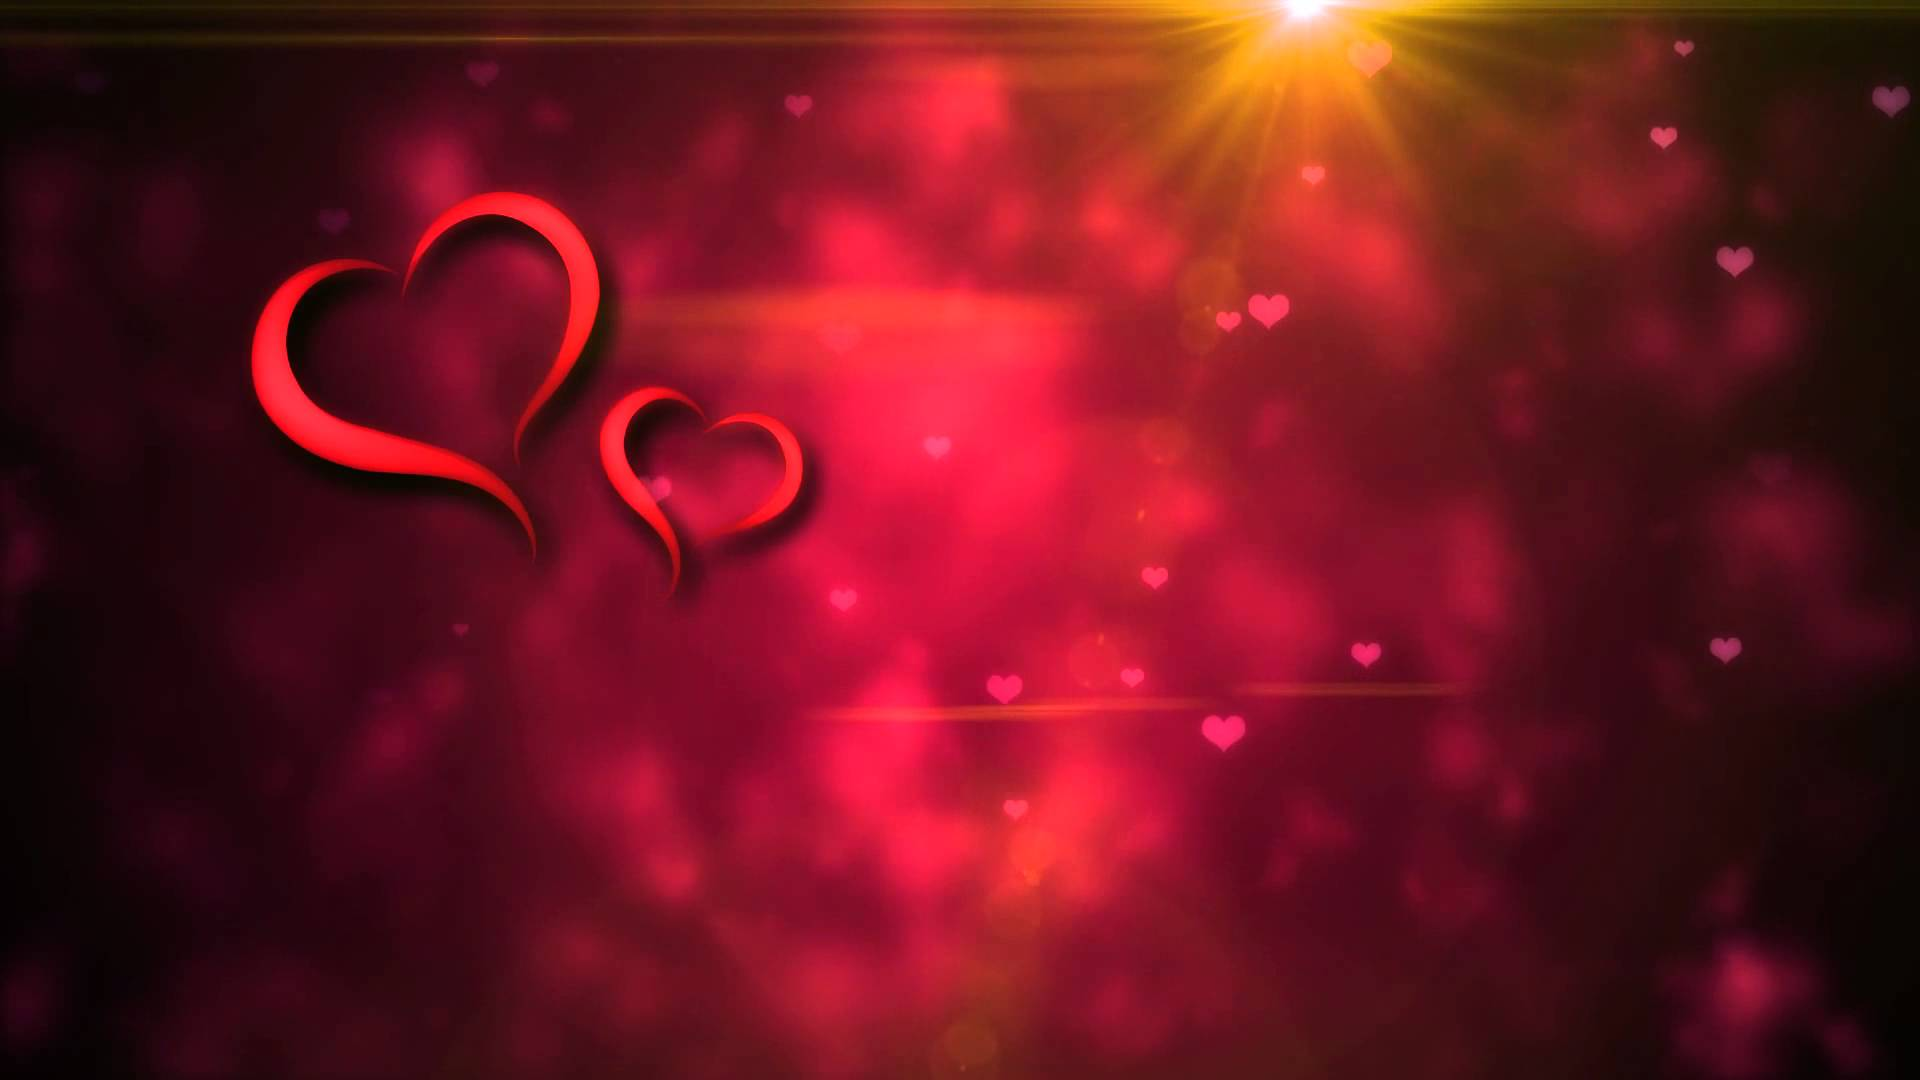 Love Greeting Hd Wallpaper : Hd Wedding Backgrounds - WallpaperSafari